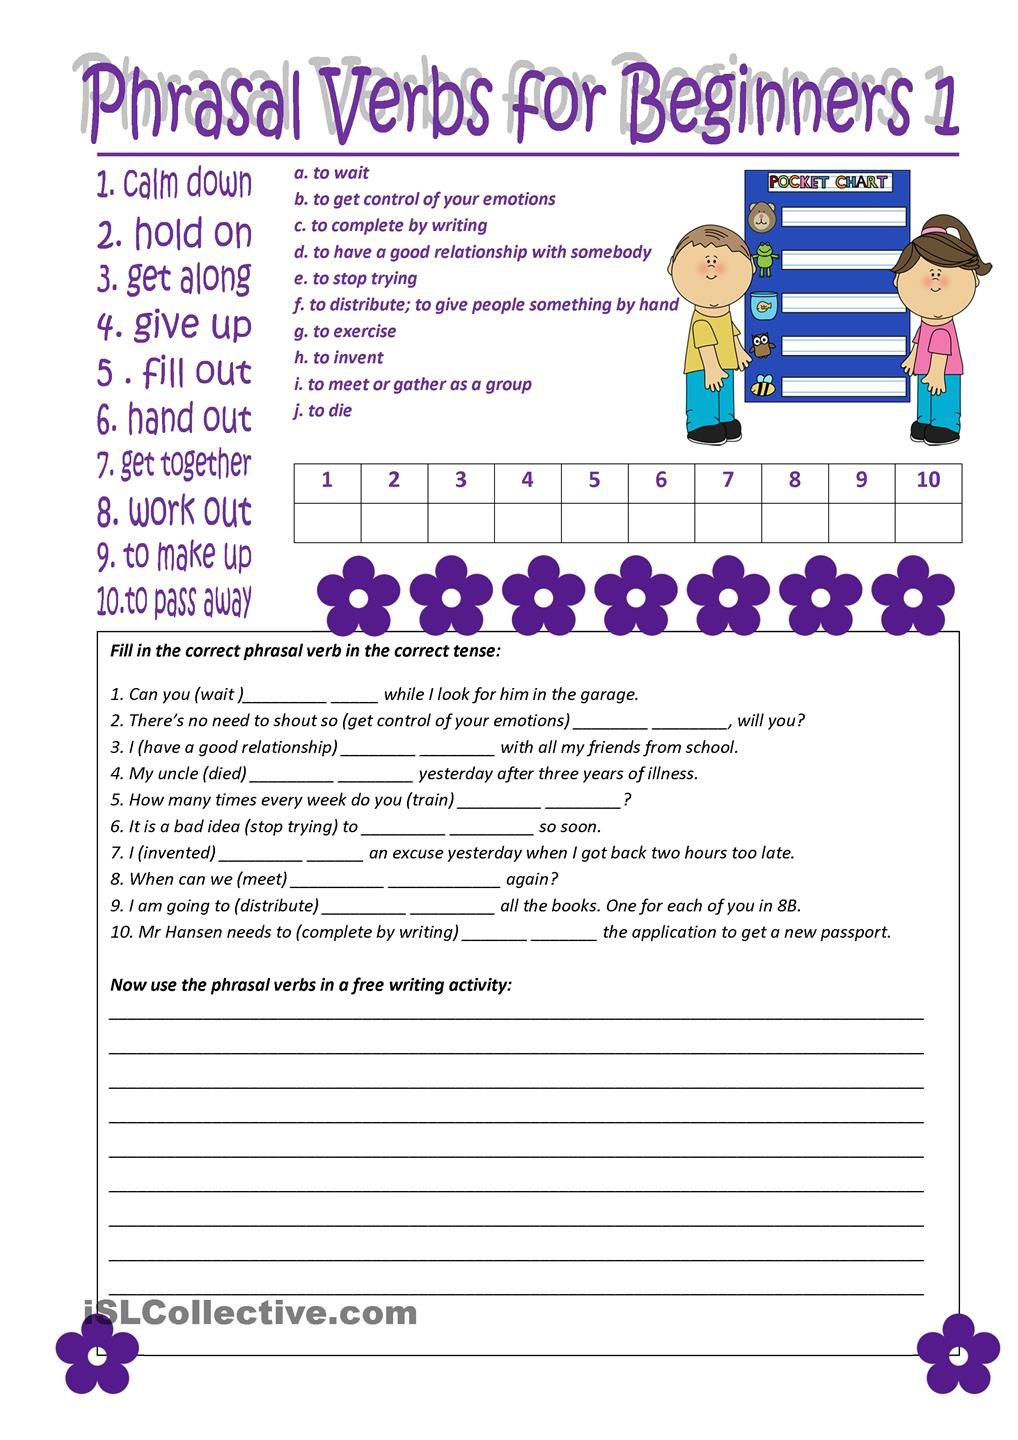 hight resolution of Phrasal Verbs for Beginners 1   Verb worksheets